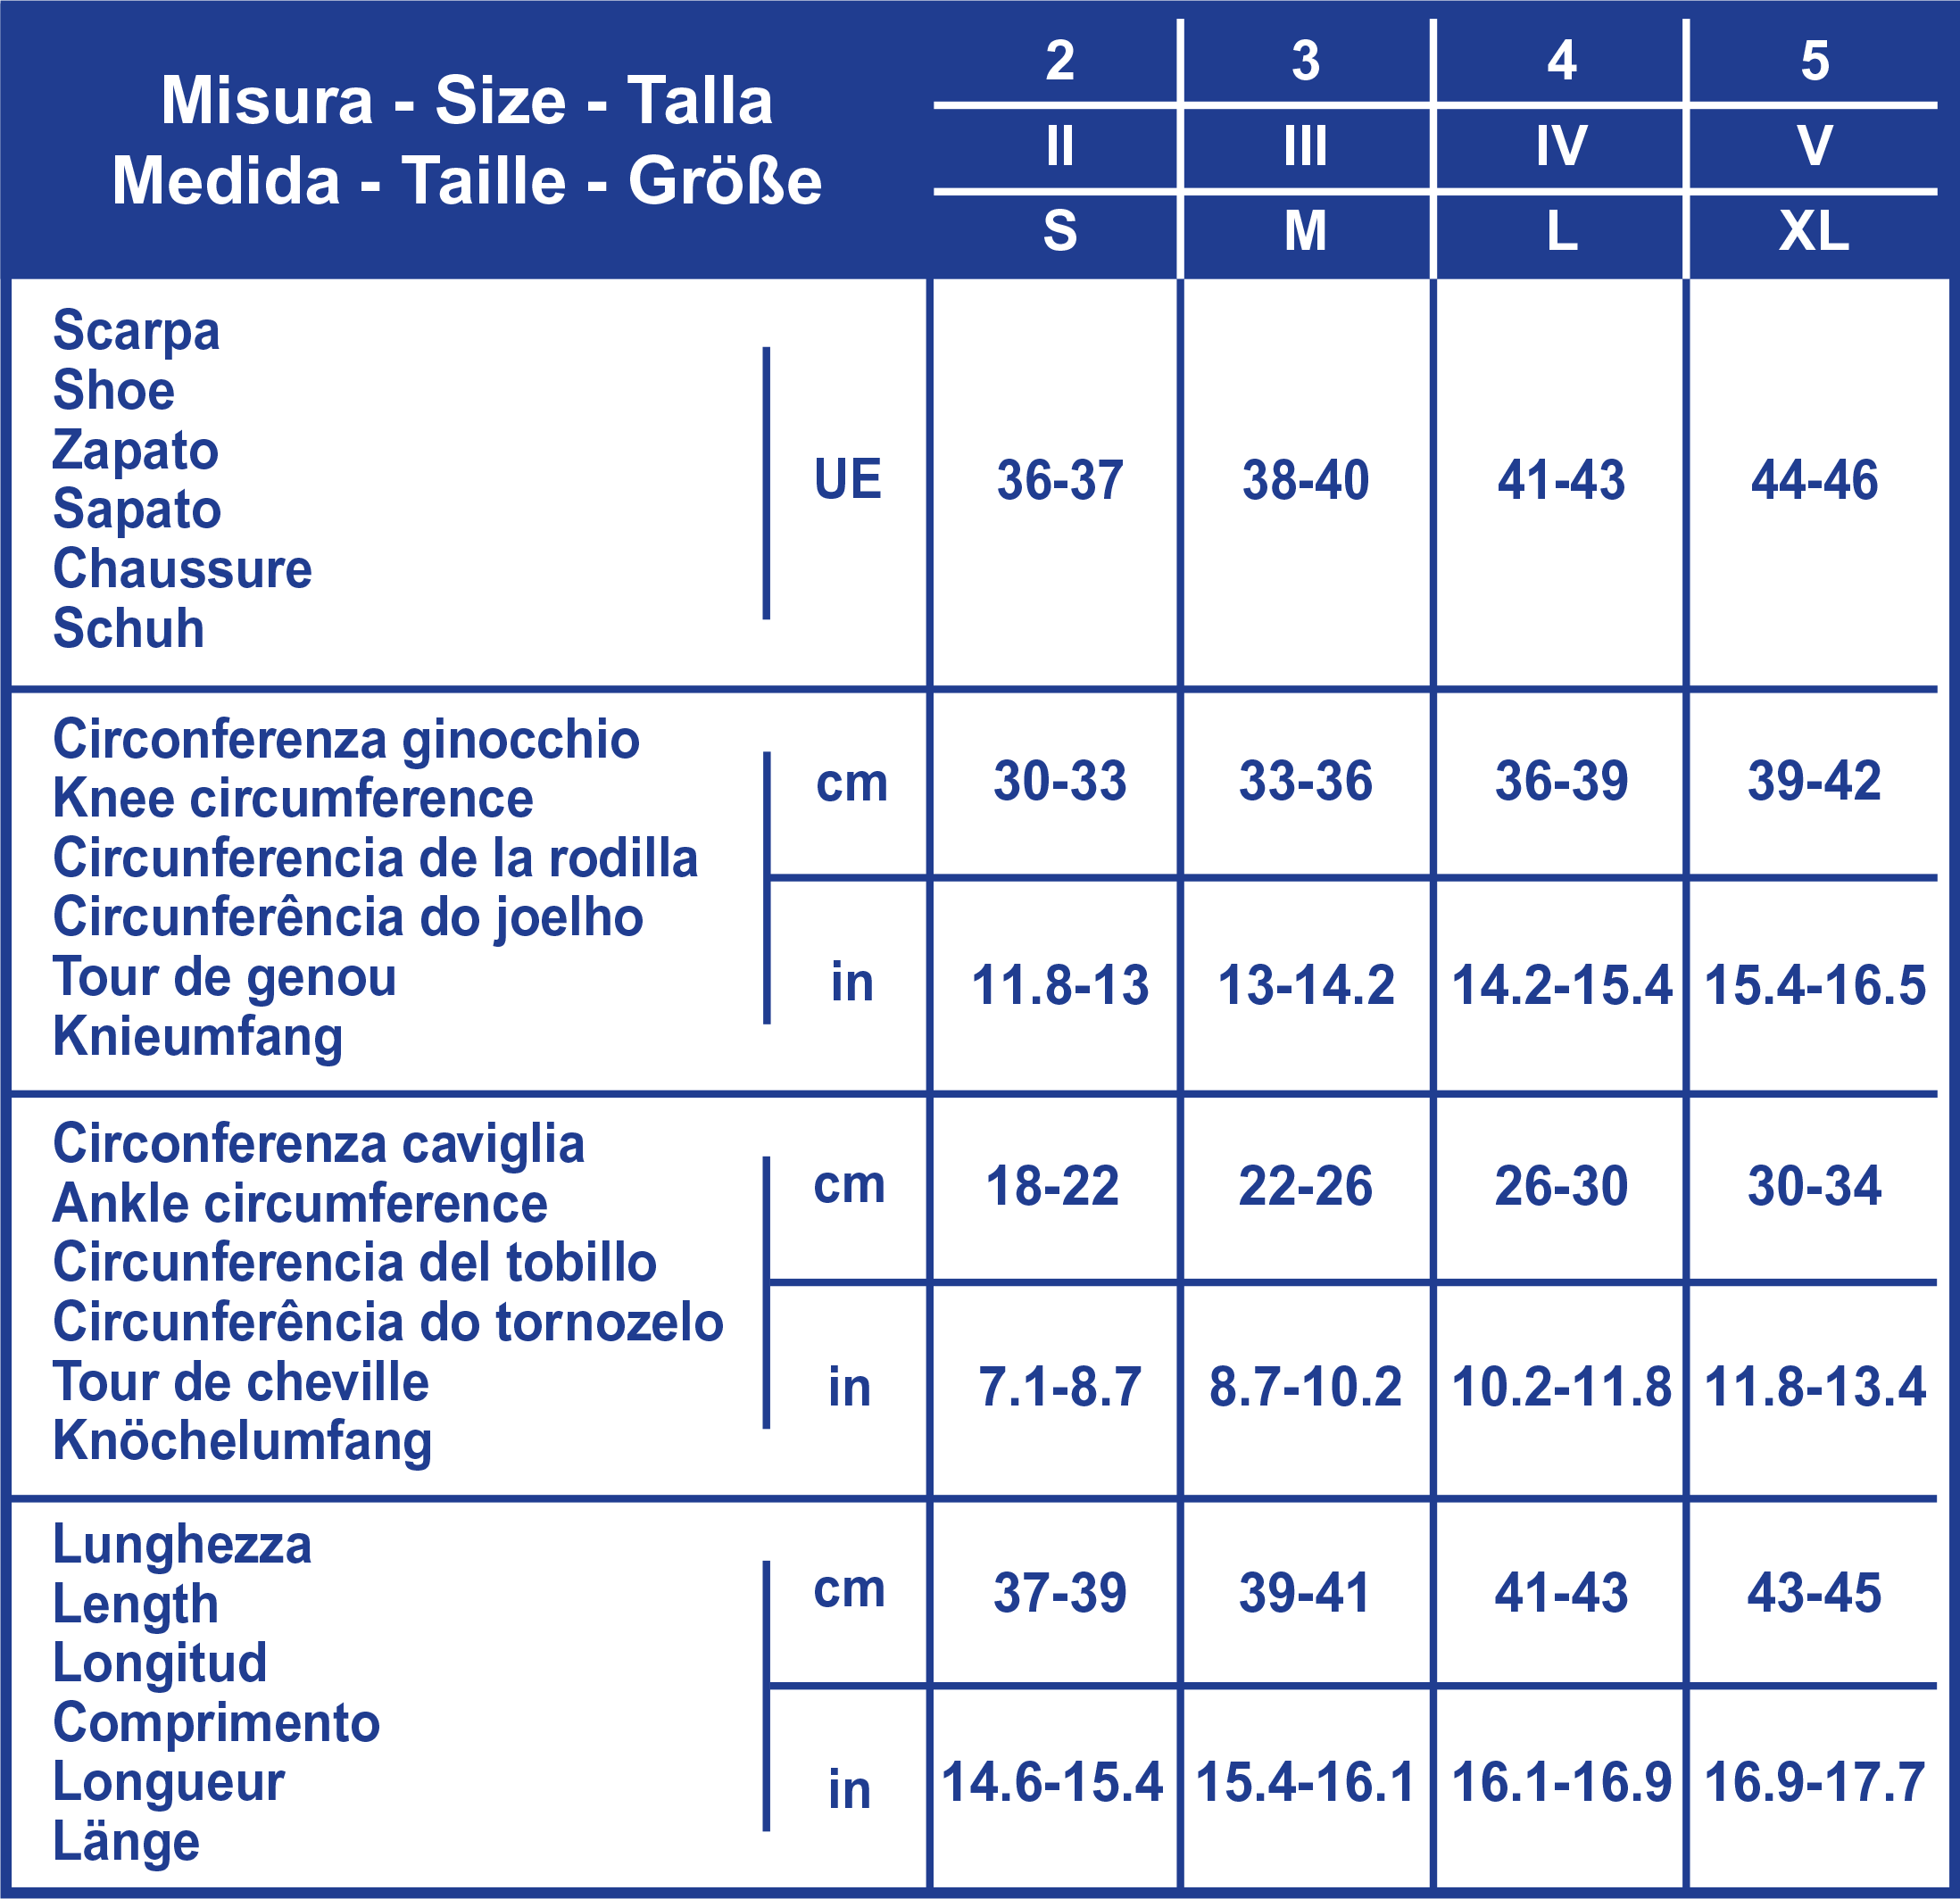 tabelle amazon CALZE 480-401.png